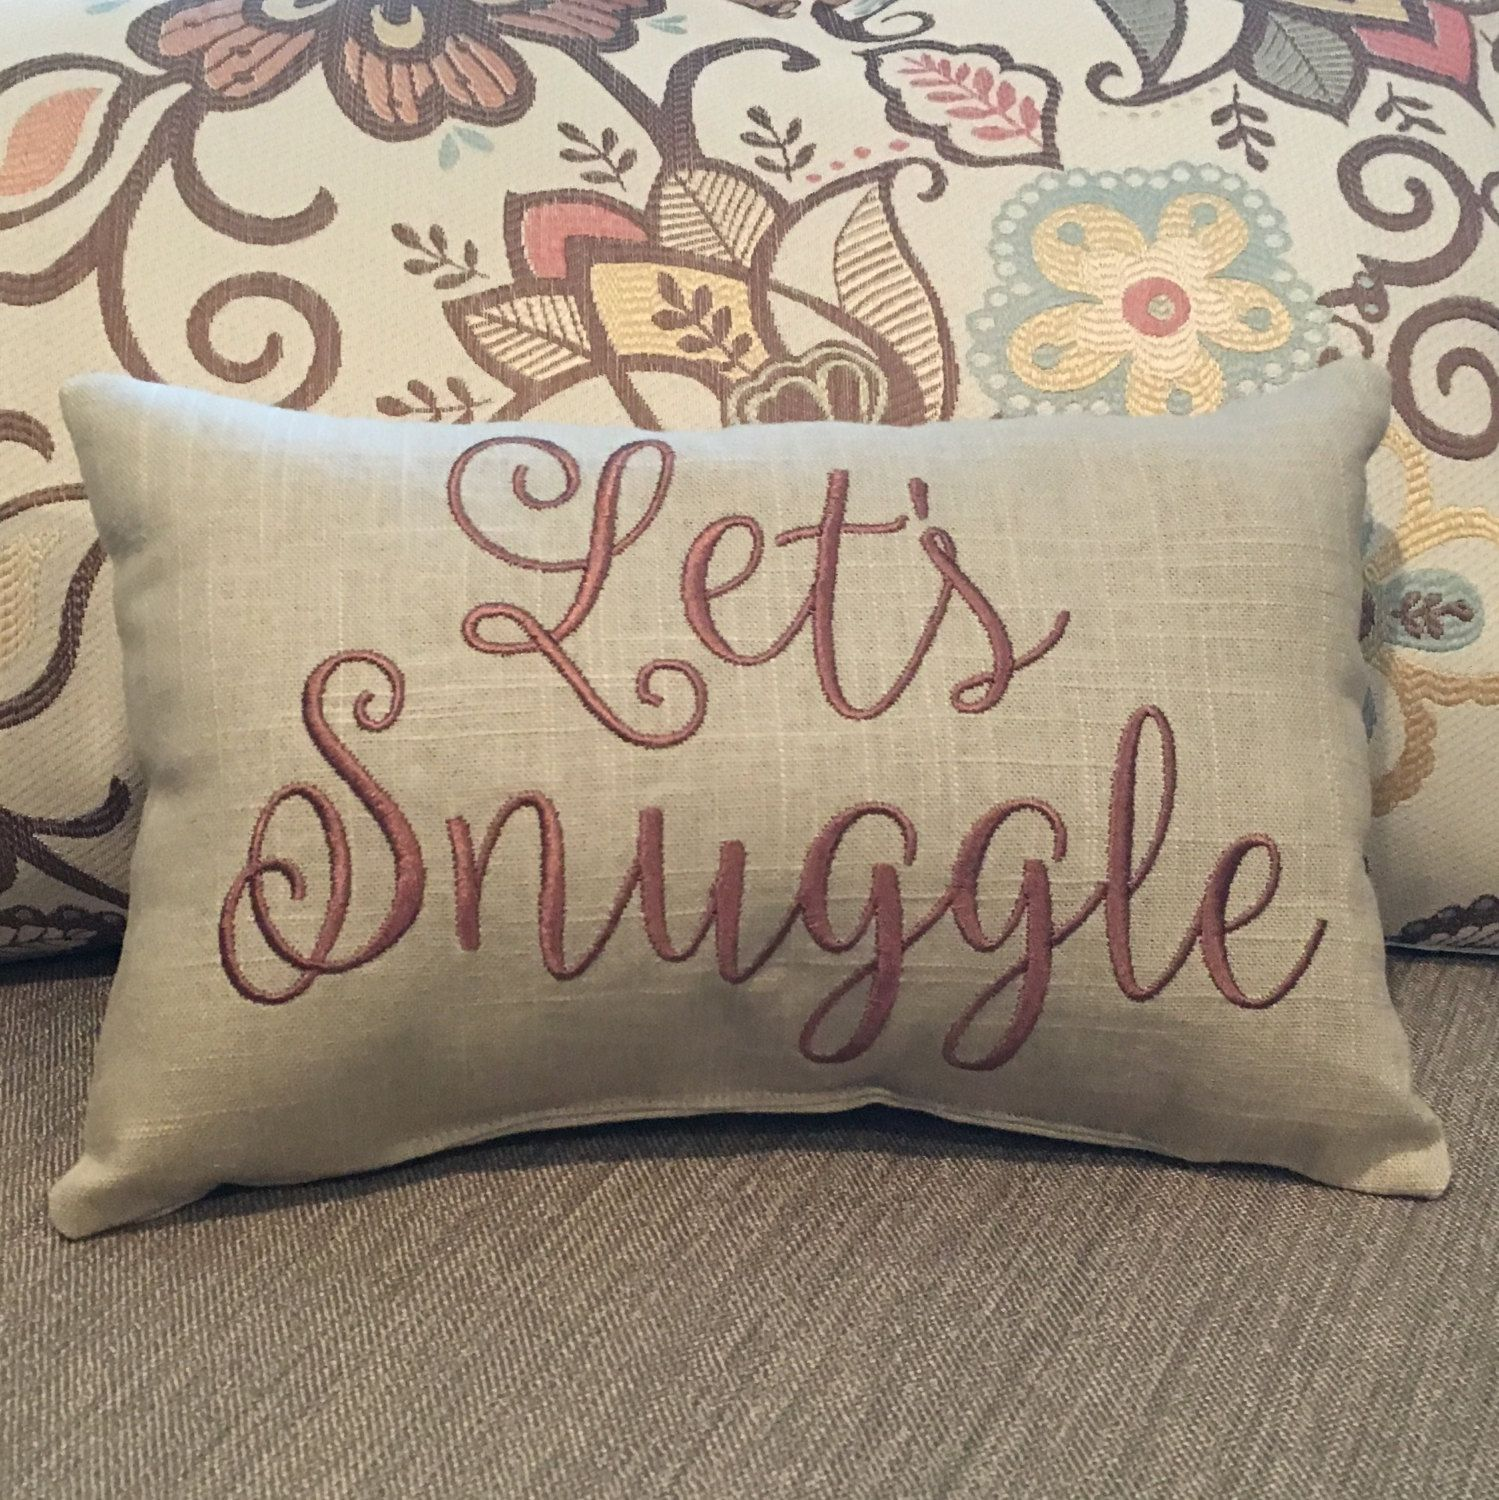 fa1edf59f856e3f665de3c387b0a7051 - Ten Things That Happen When You Are In Throw Pillows With Words